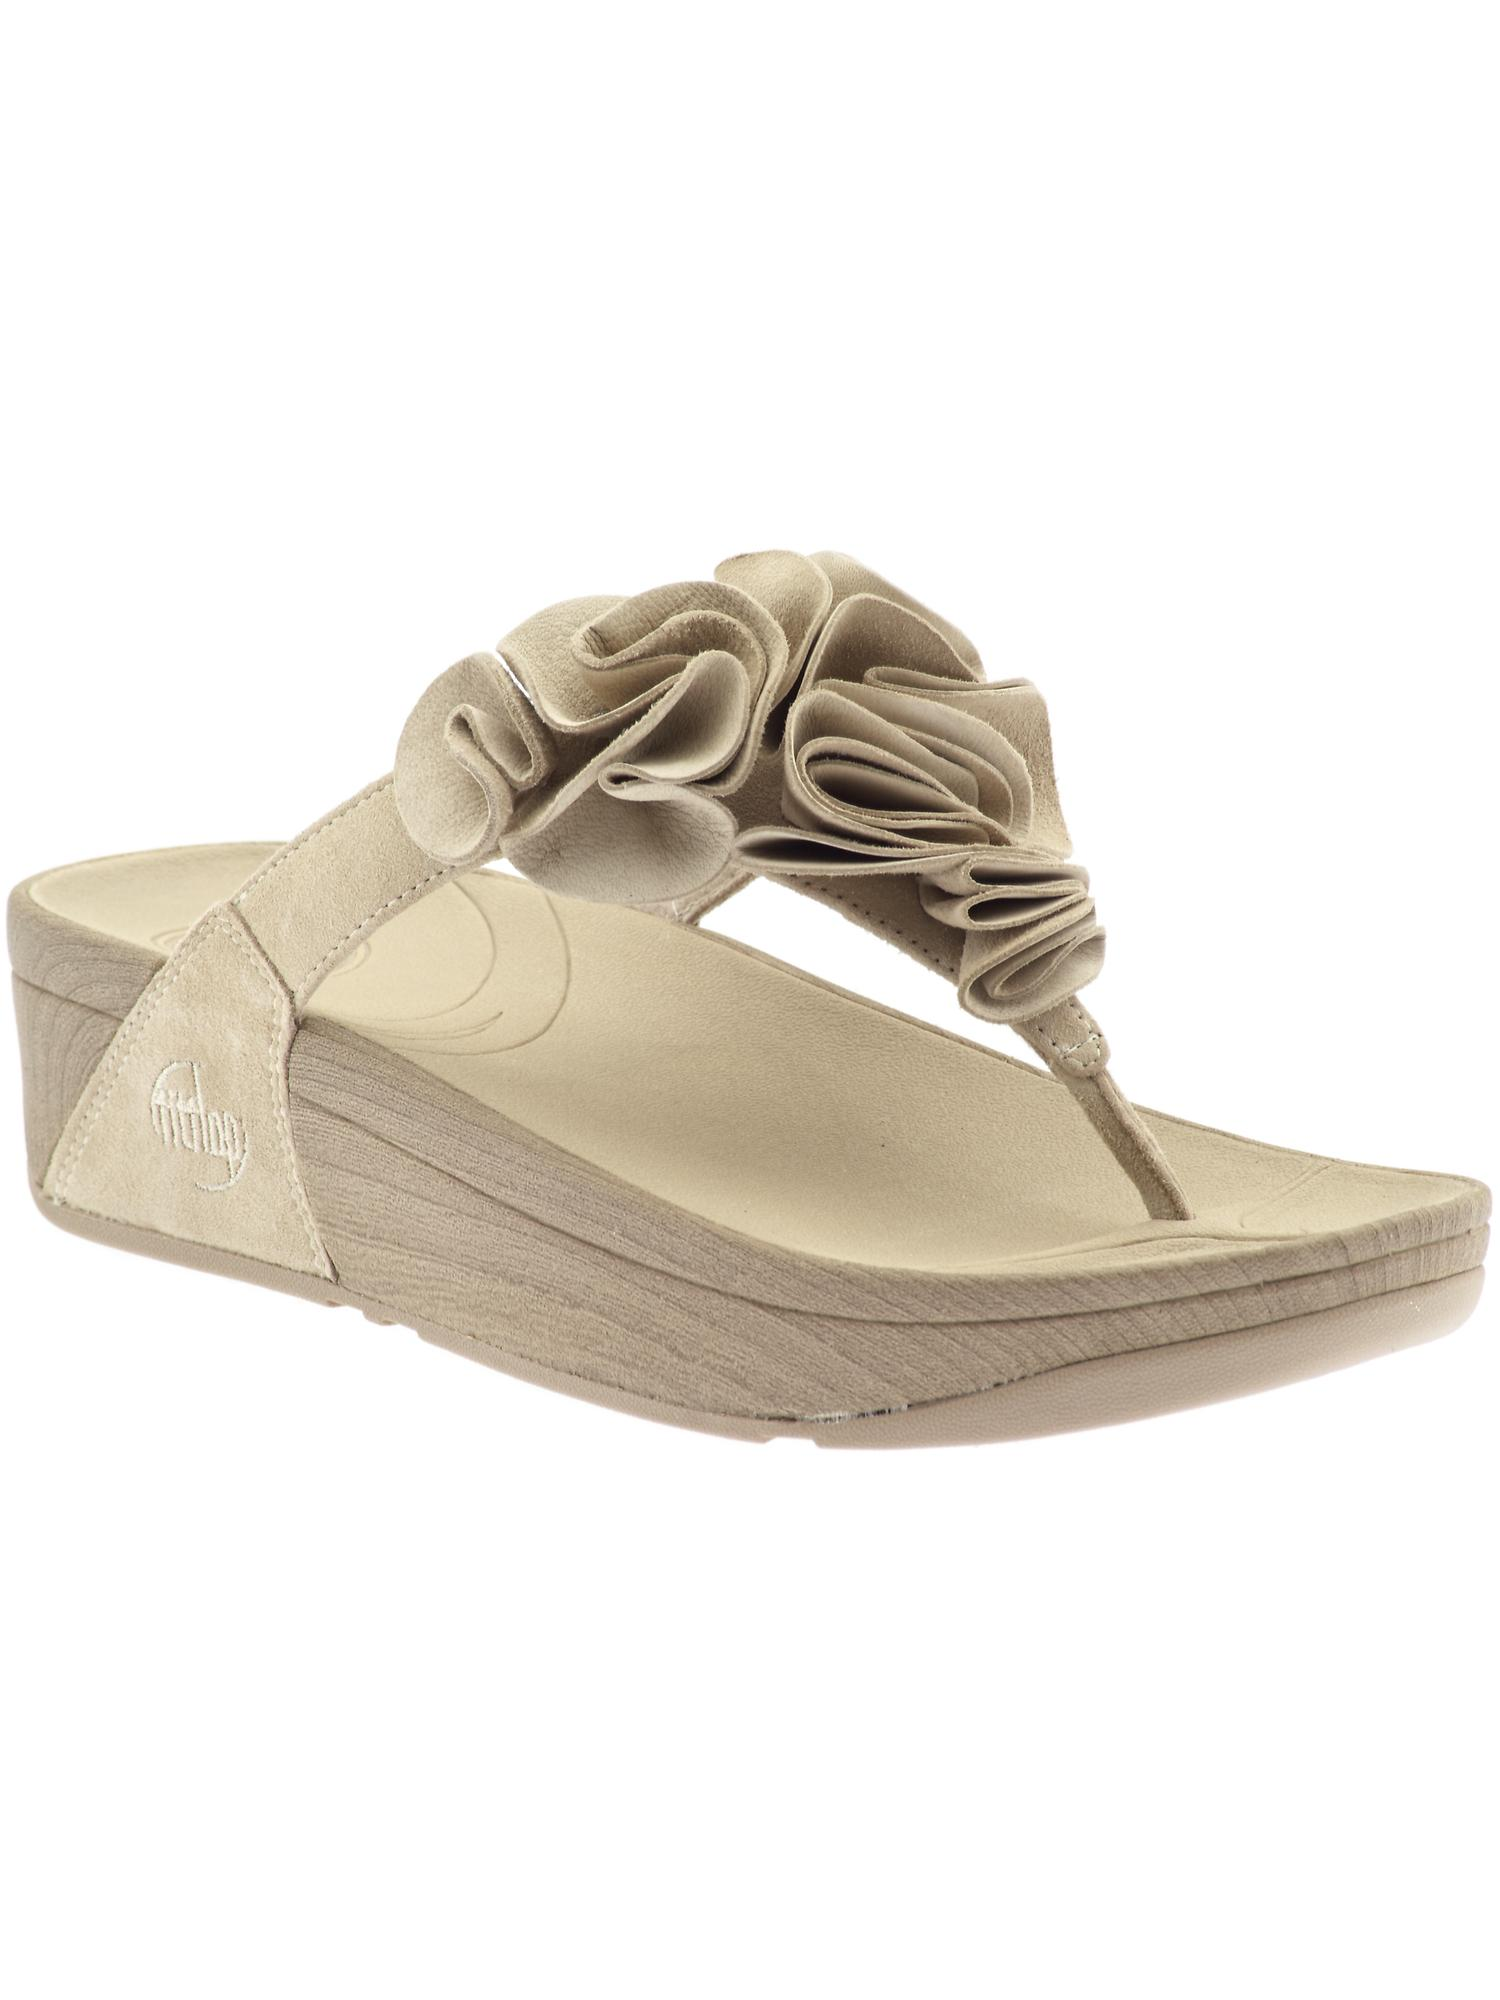 Piperlime Shoes Review